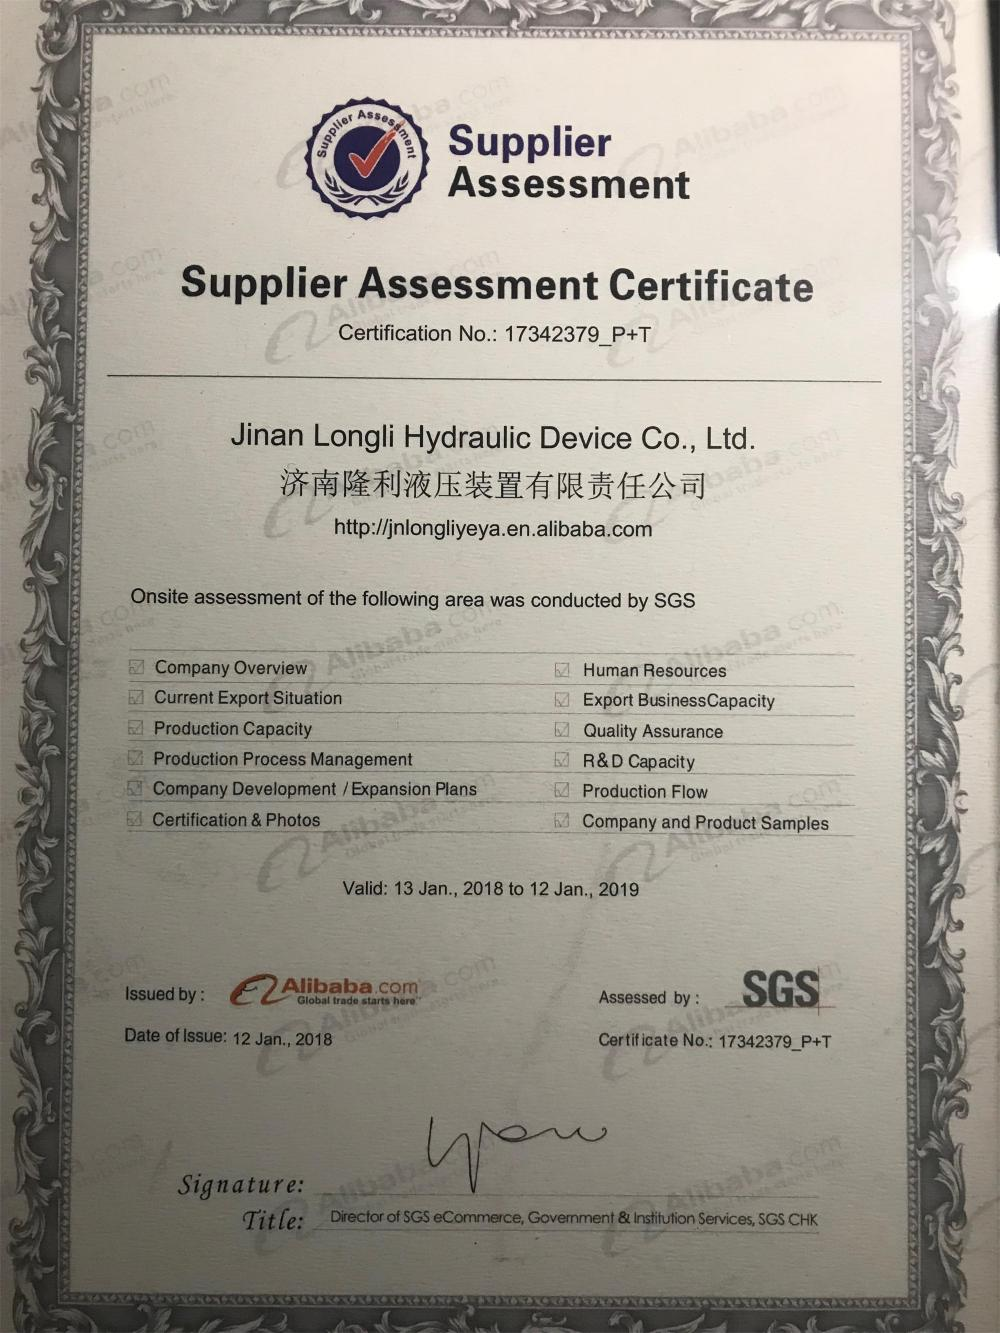 Supplier Assessment Certificate by SGS